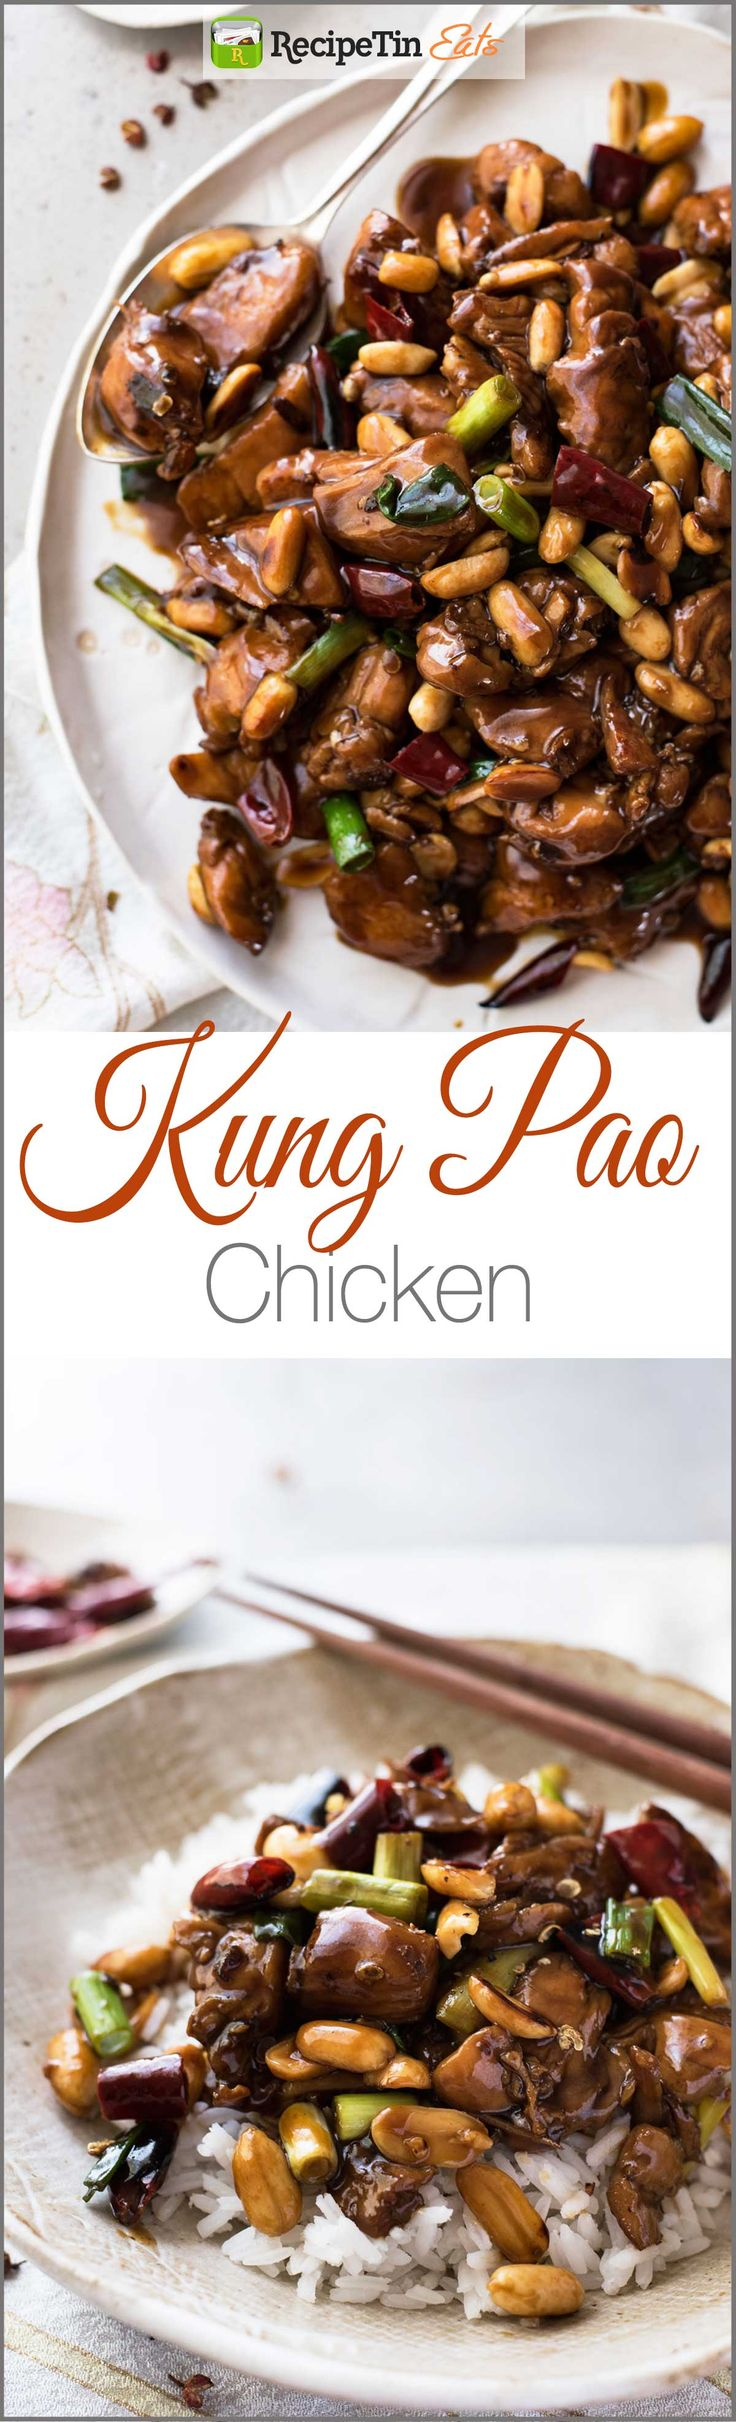 Kung Pao Chicken - Made right with a real restaurant quality sauce!